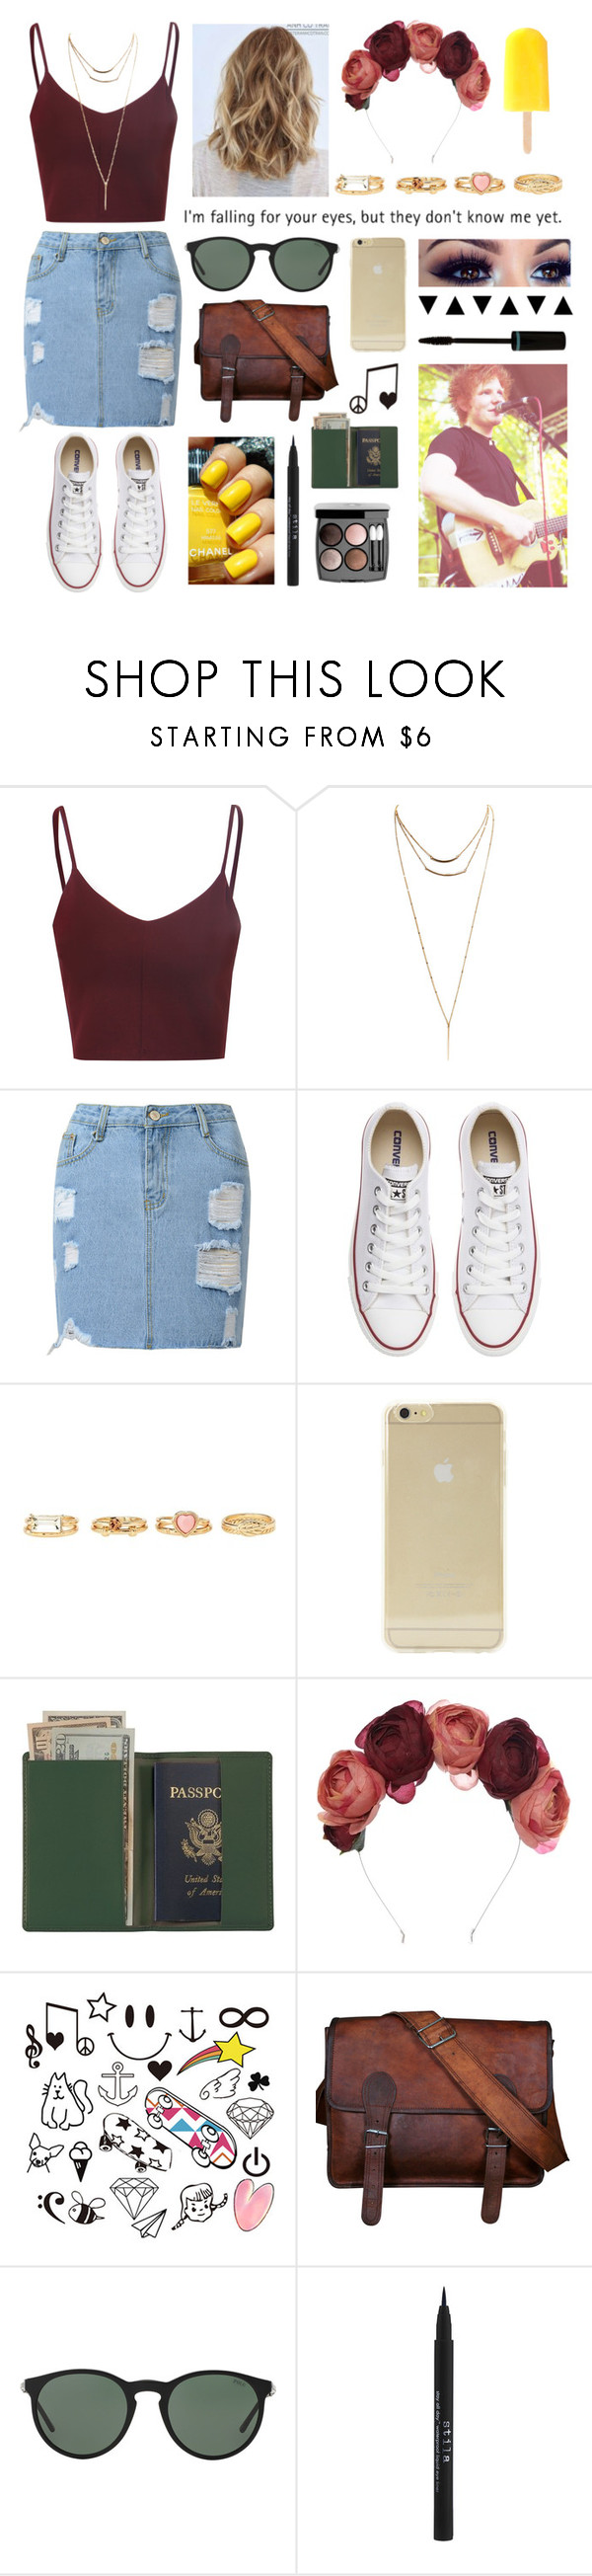 """""""I'm falling for your eyes."""" by kenz0104 ❤ liked on Polyvore featuring Glamorous, Wet Seal, Converse, Charlotte Russe, Sonix, Été Swim, Chanel, Royce Leather, Crown and Glory and Polo Ralph Lauren"""